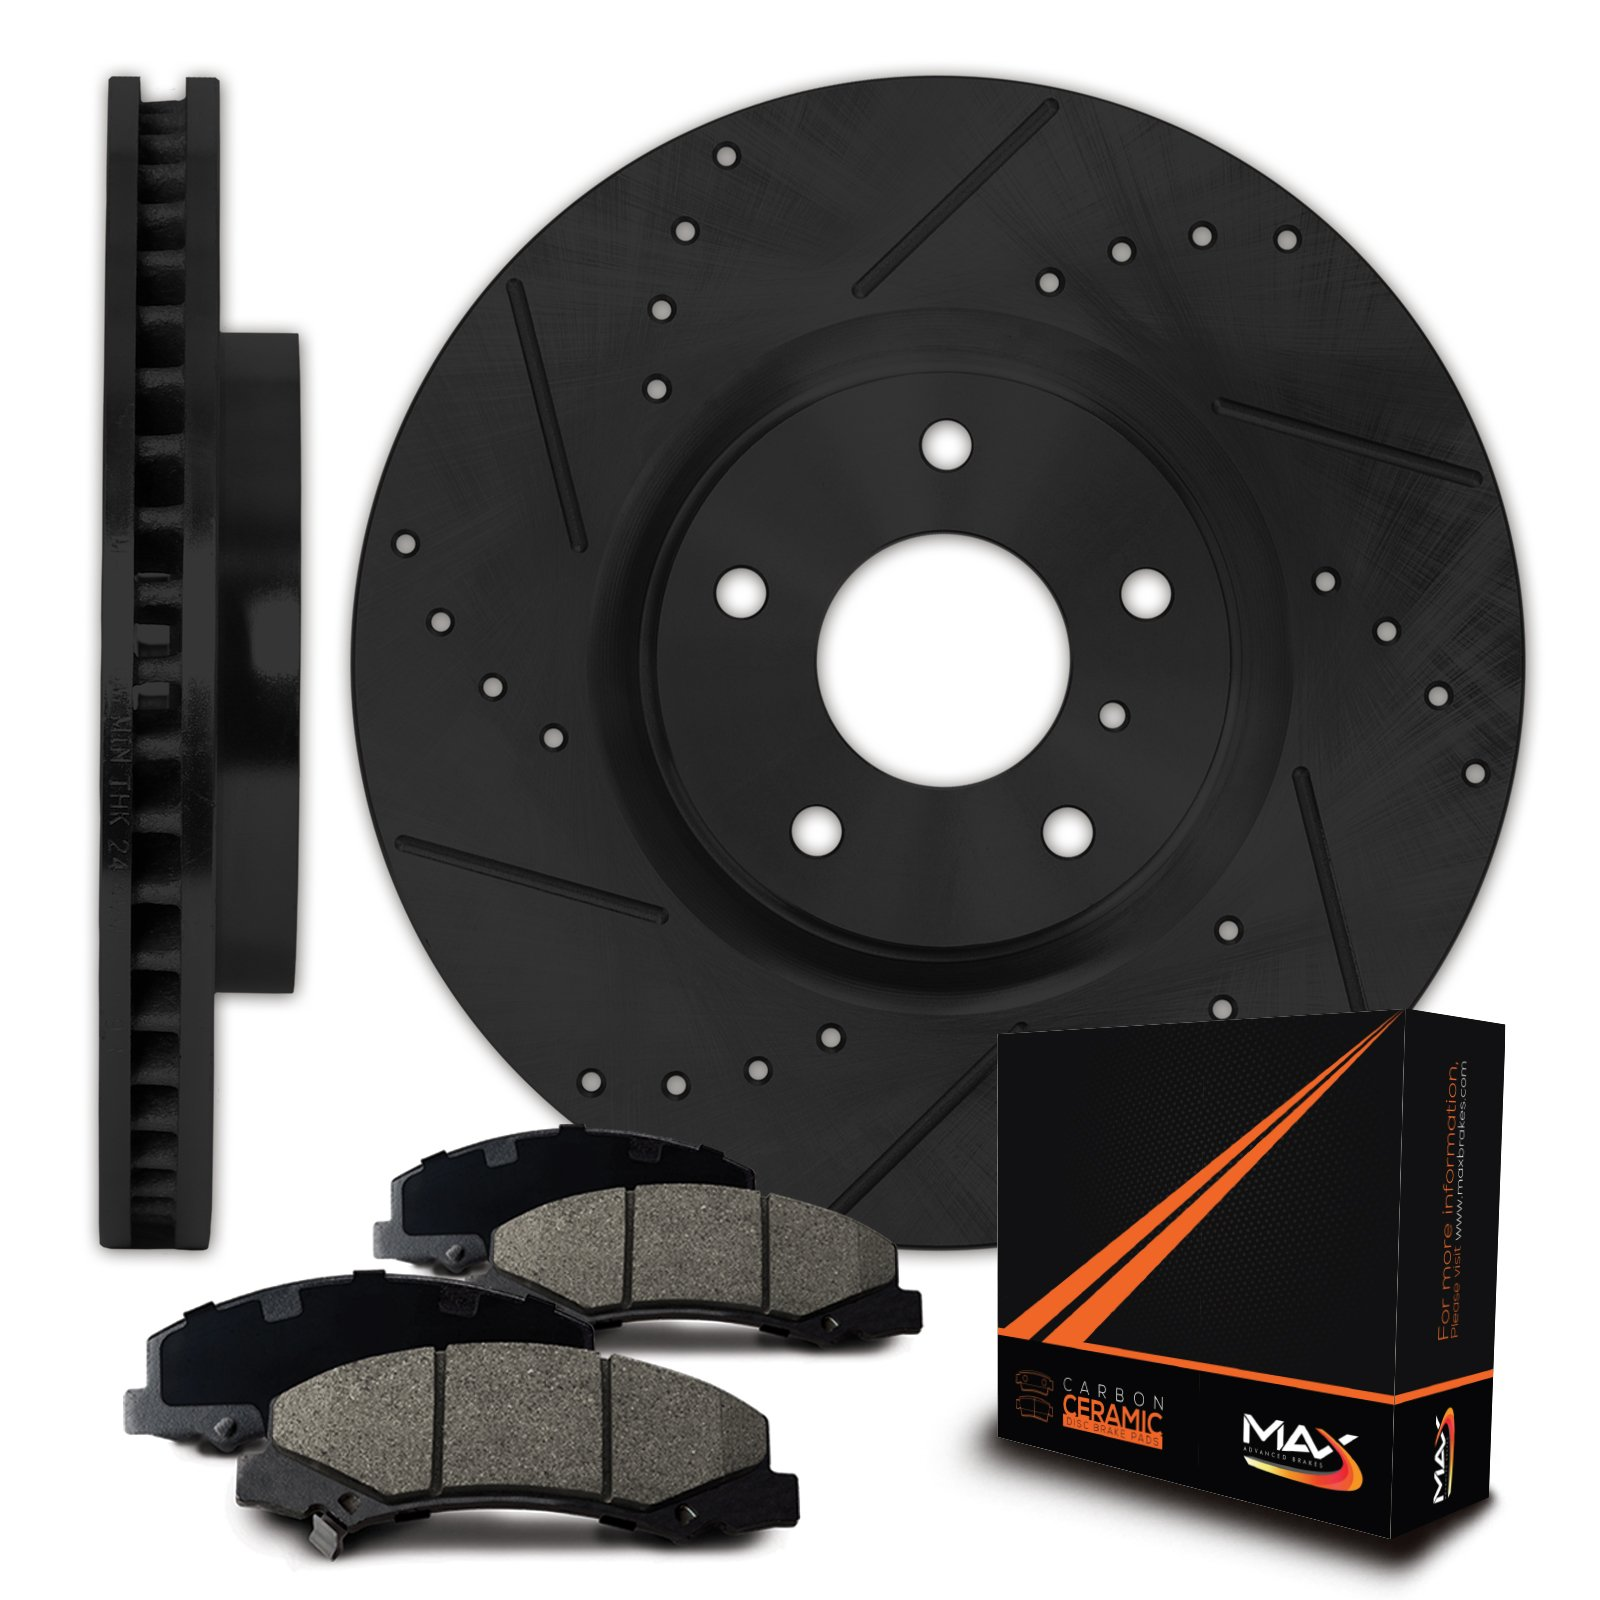 Max Brakes E-Coated Slotted|Drilled Rotors w/Ceramic Brake Pads Front Elite Brake Kit KT005581 [Fits:2003-2008 Corolla Matrix Vibe]